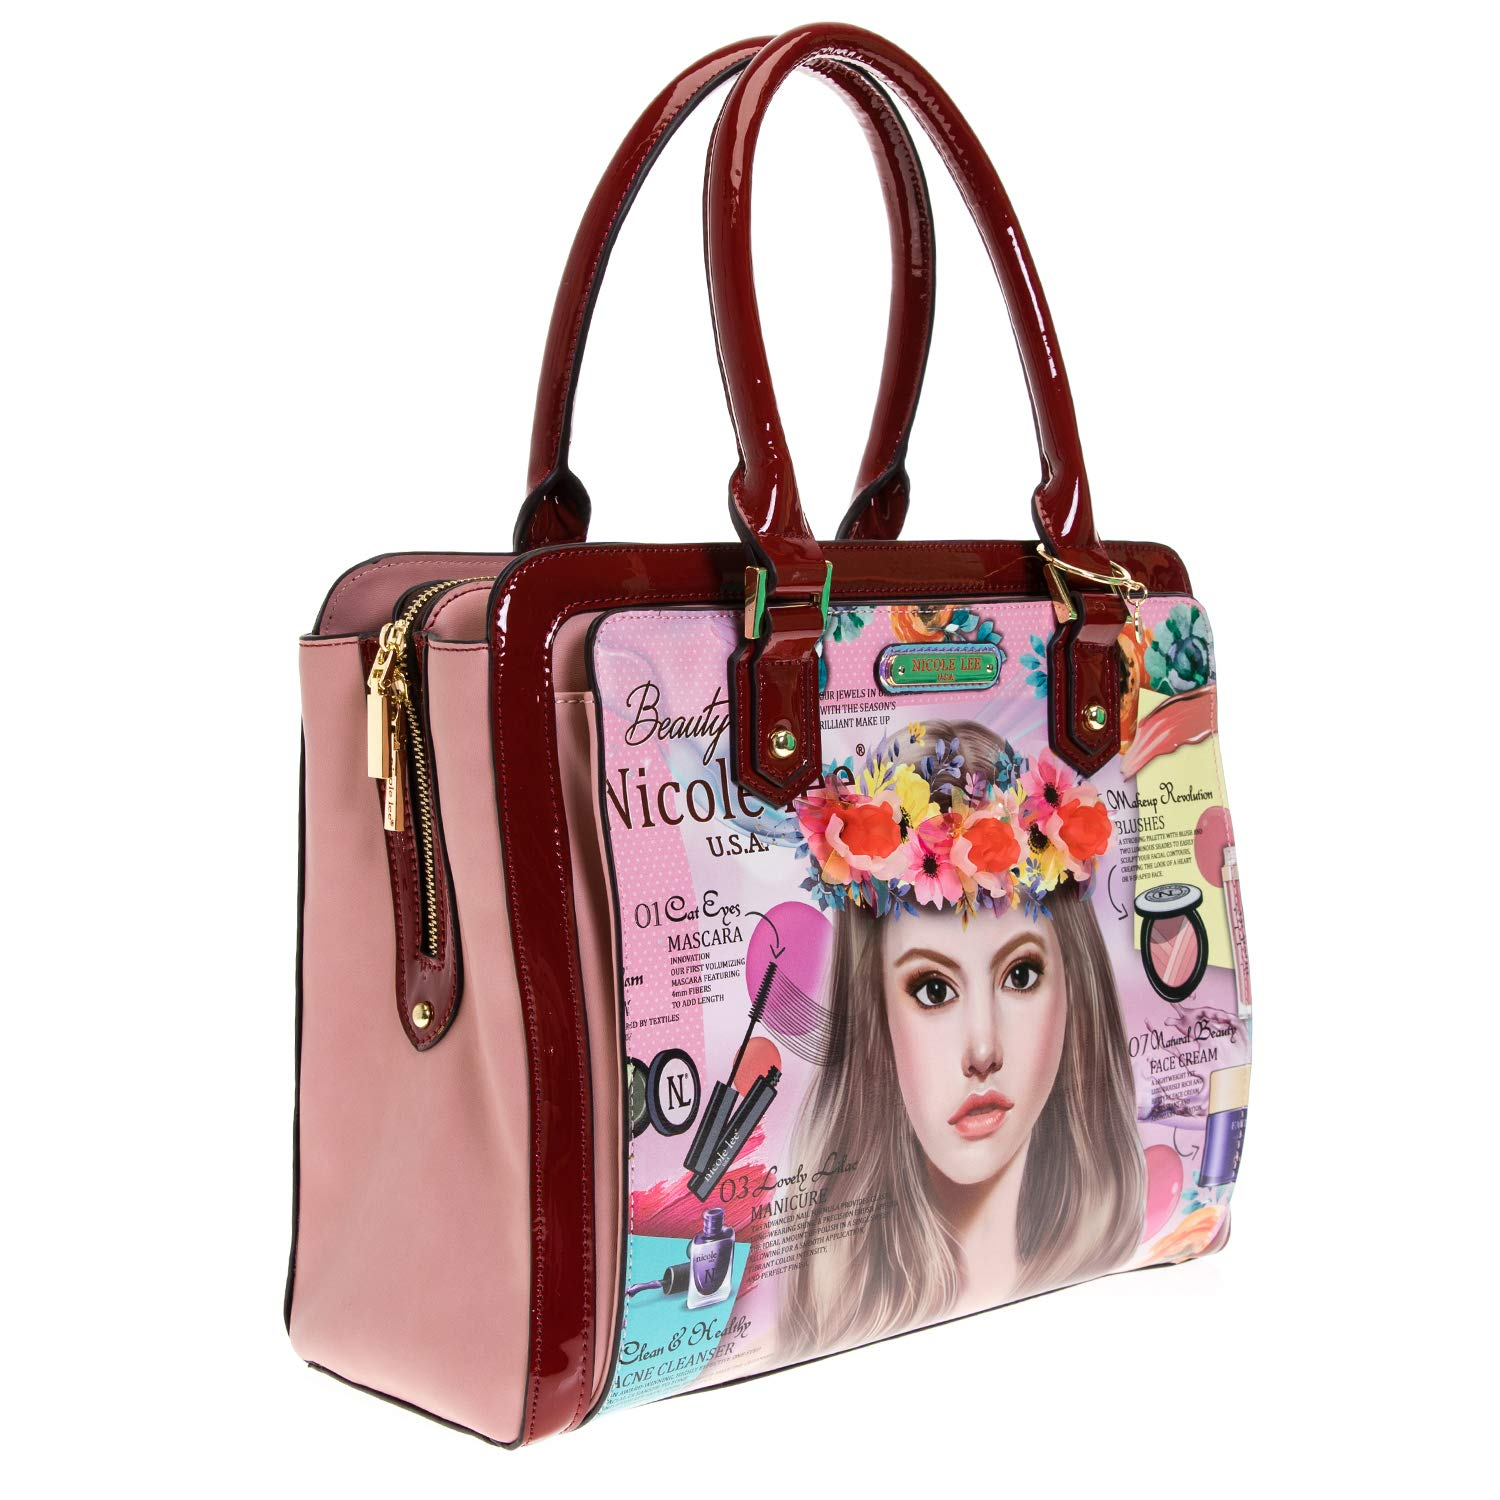 Floral Top Handle Brief Case Tote Bag with Spacious Compartment: Handbags: Amazon.com